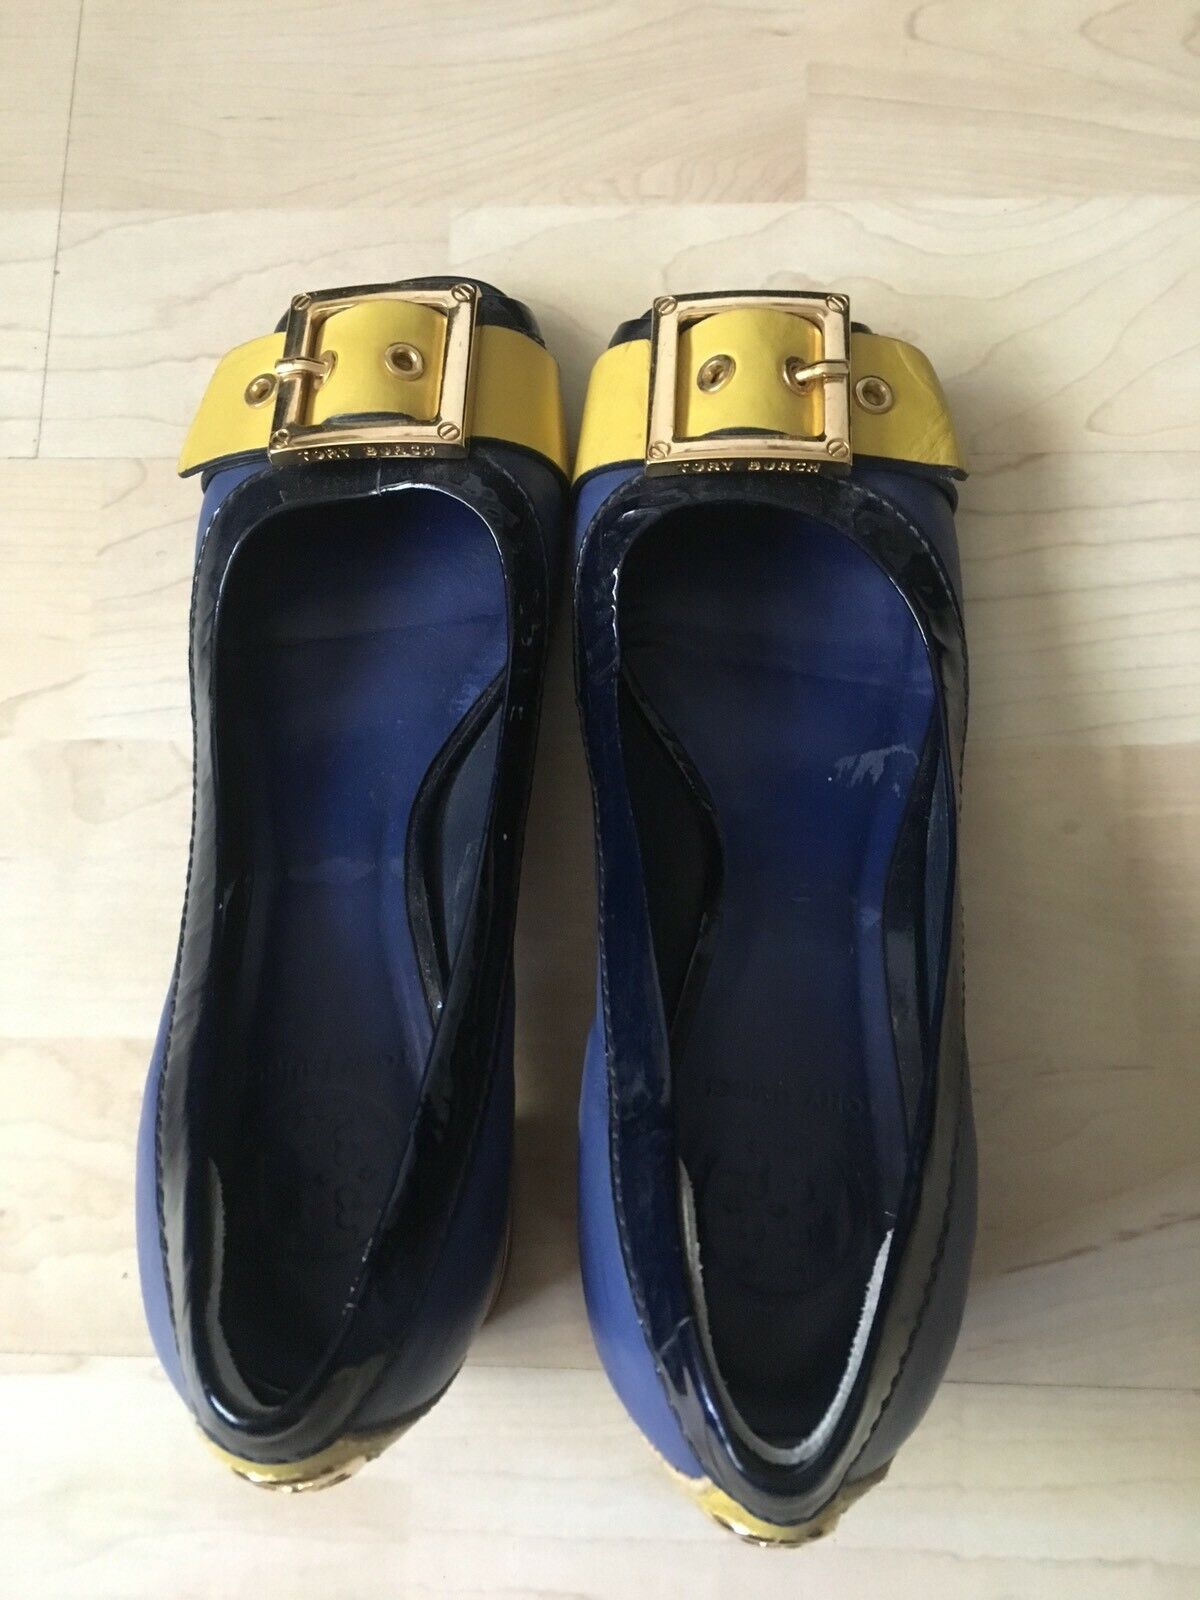 Tory Burch Blau and Gelb Block Pump sz. sz. sz. 7M 0fb789